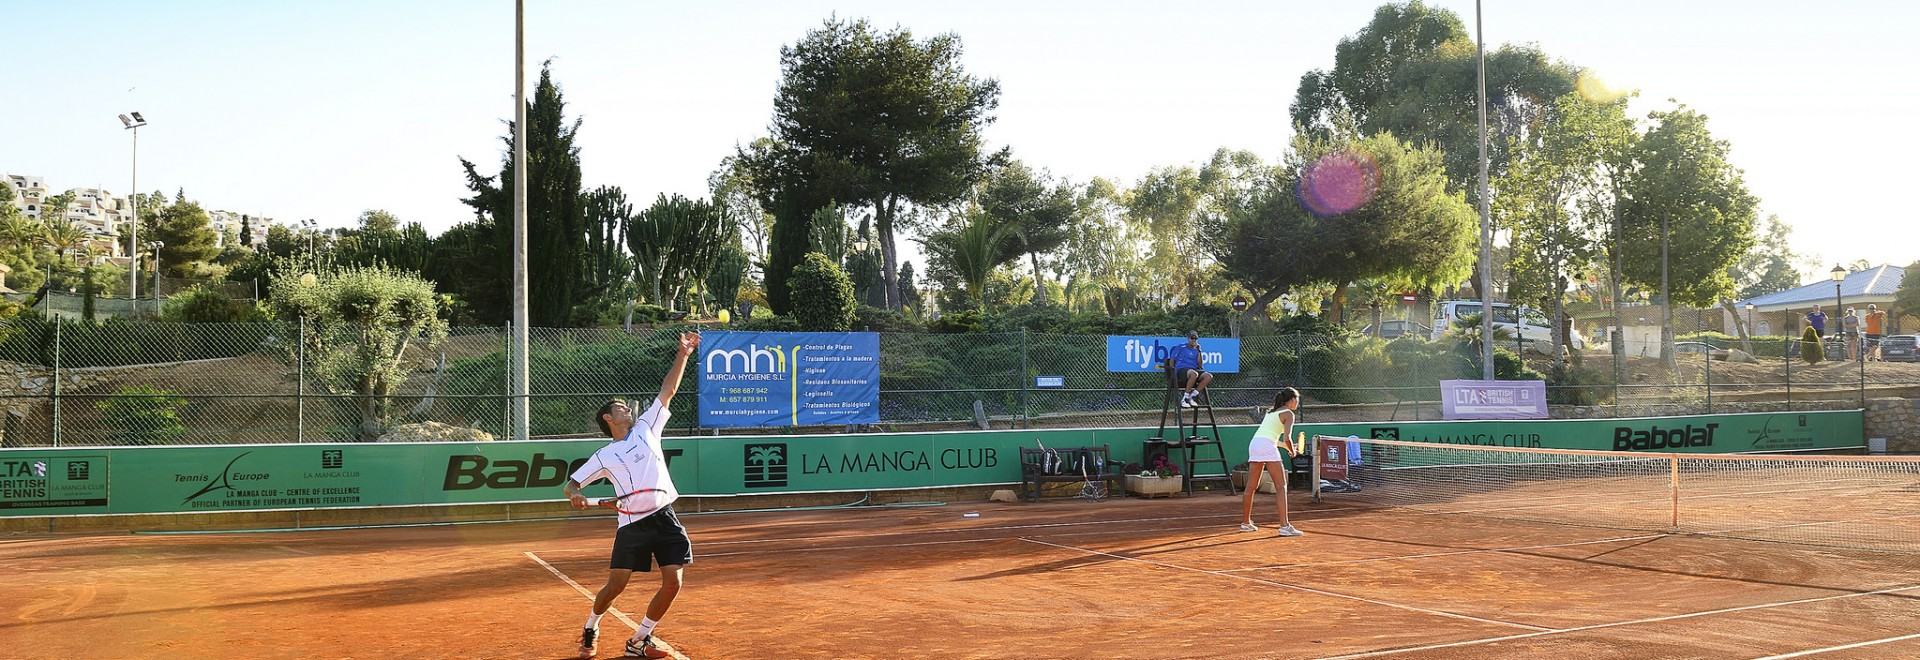 5-Day Adult Tennis Academy  - La Manga Club, Murcia